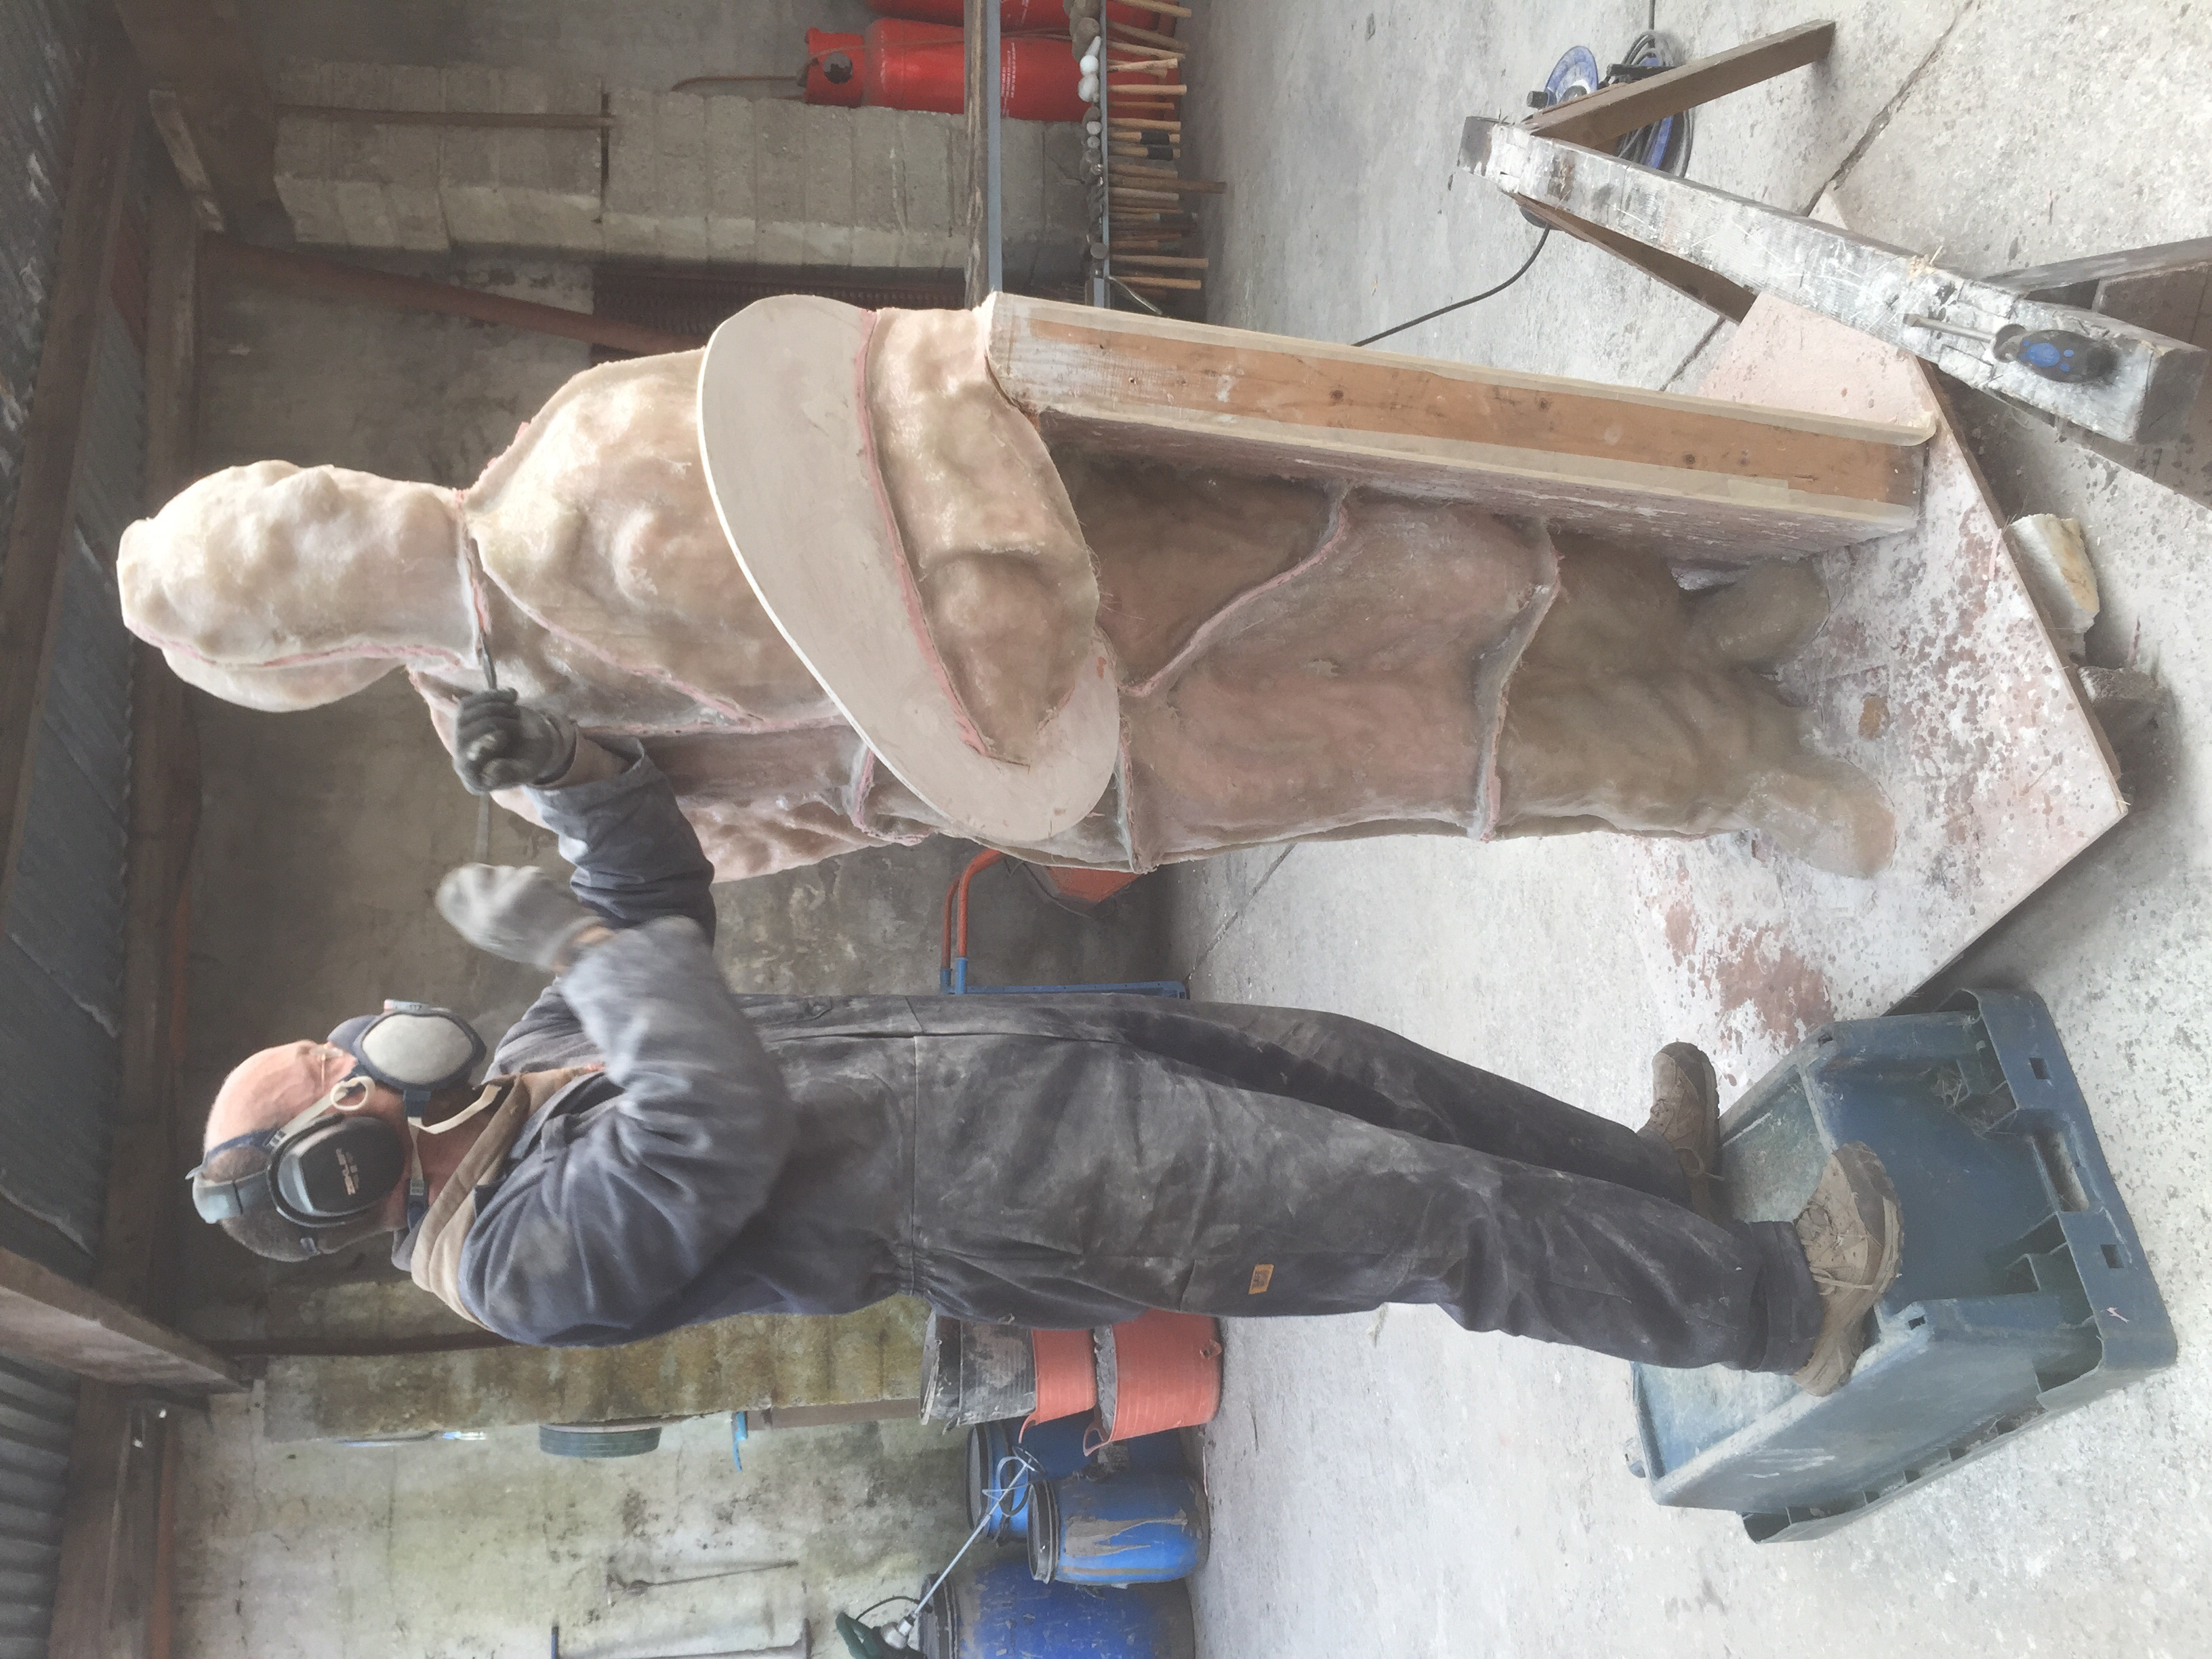 De-moulding is one of the most unpleasant jobs in the process, as well as being unnerving as most of the plaster original is lost in the process!